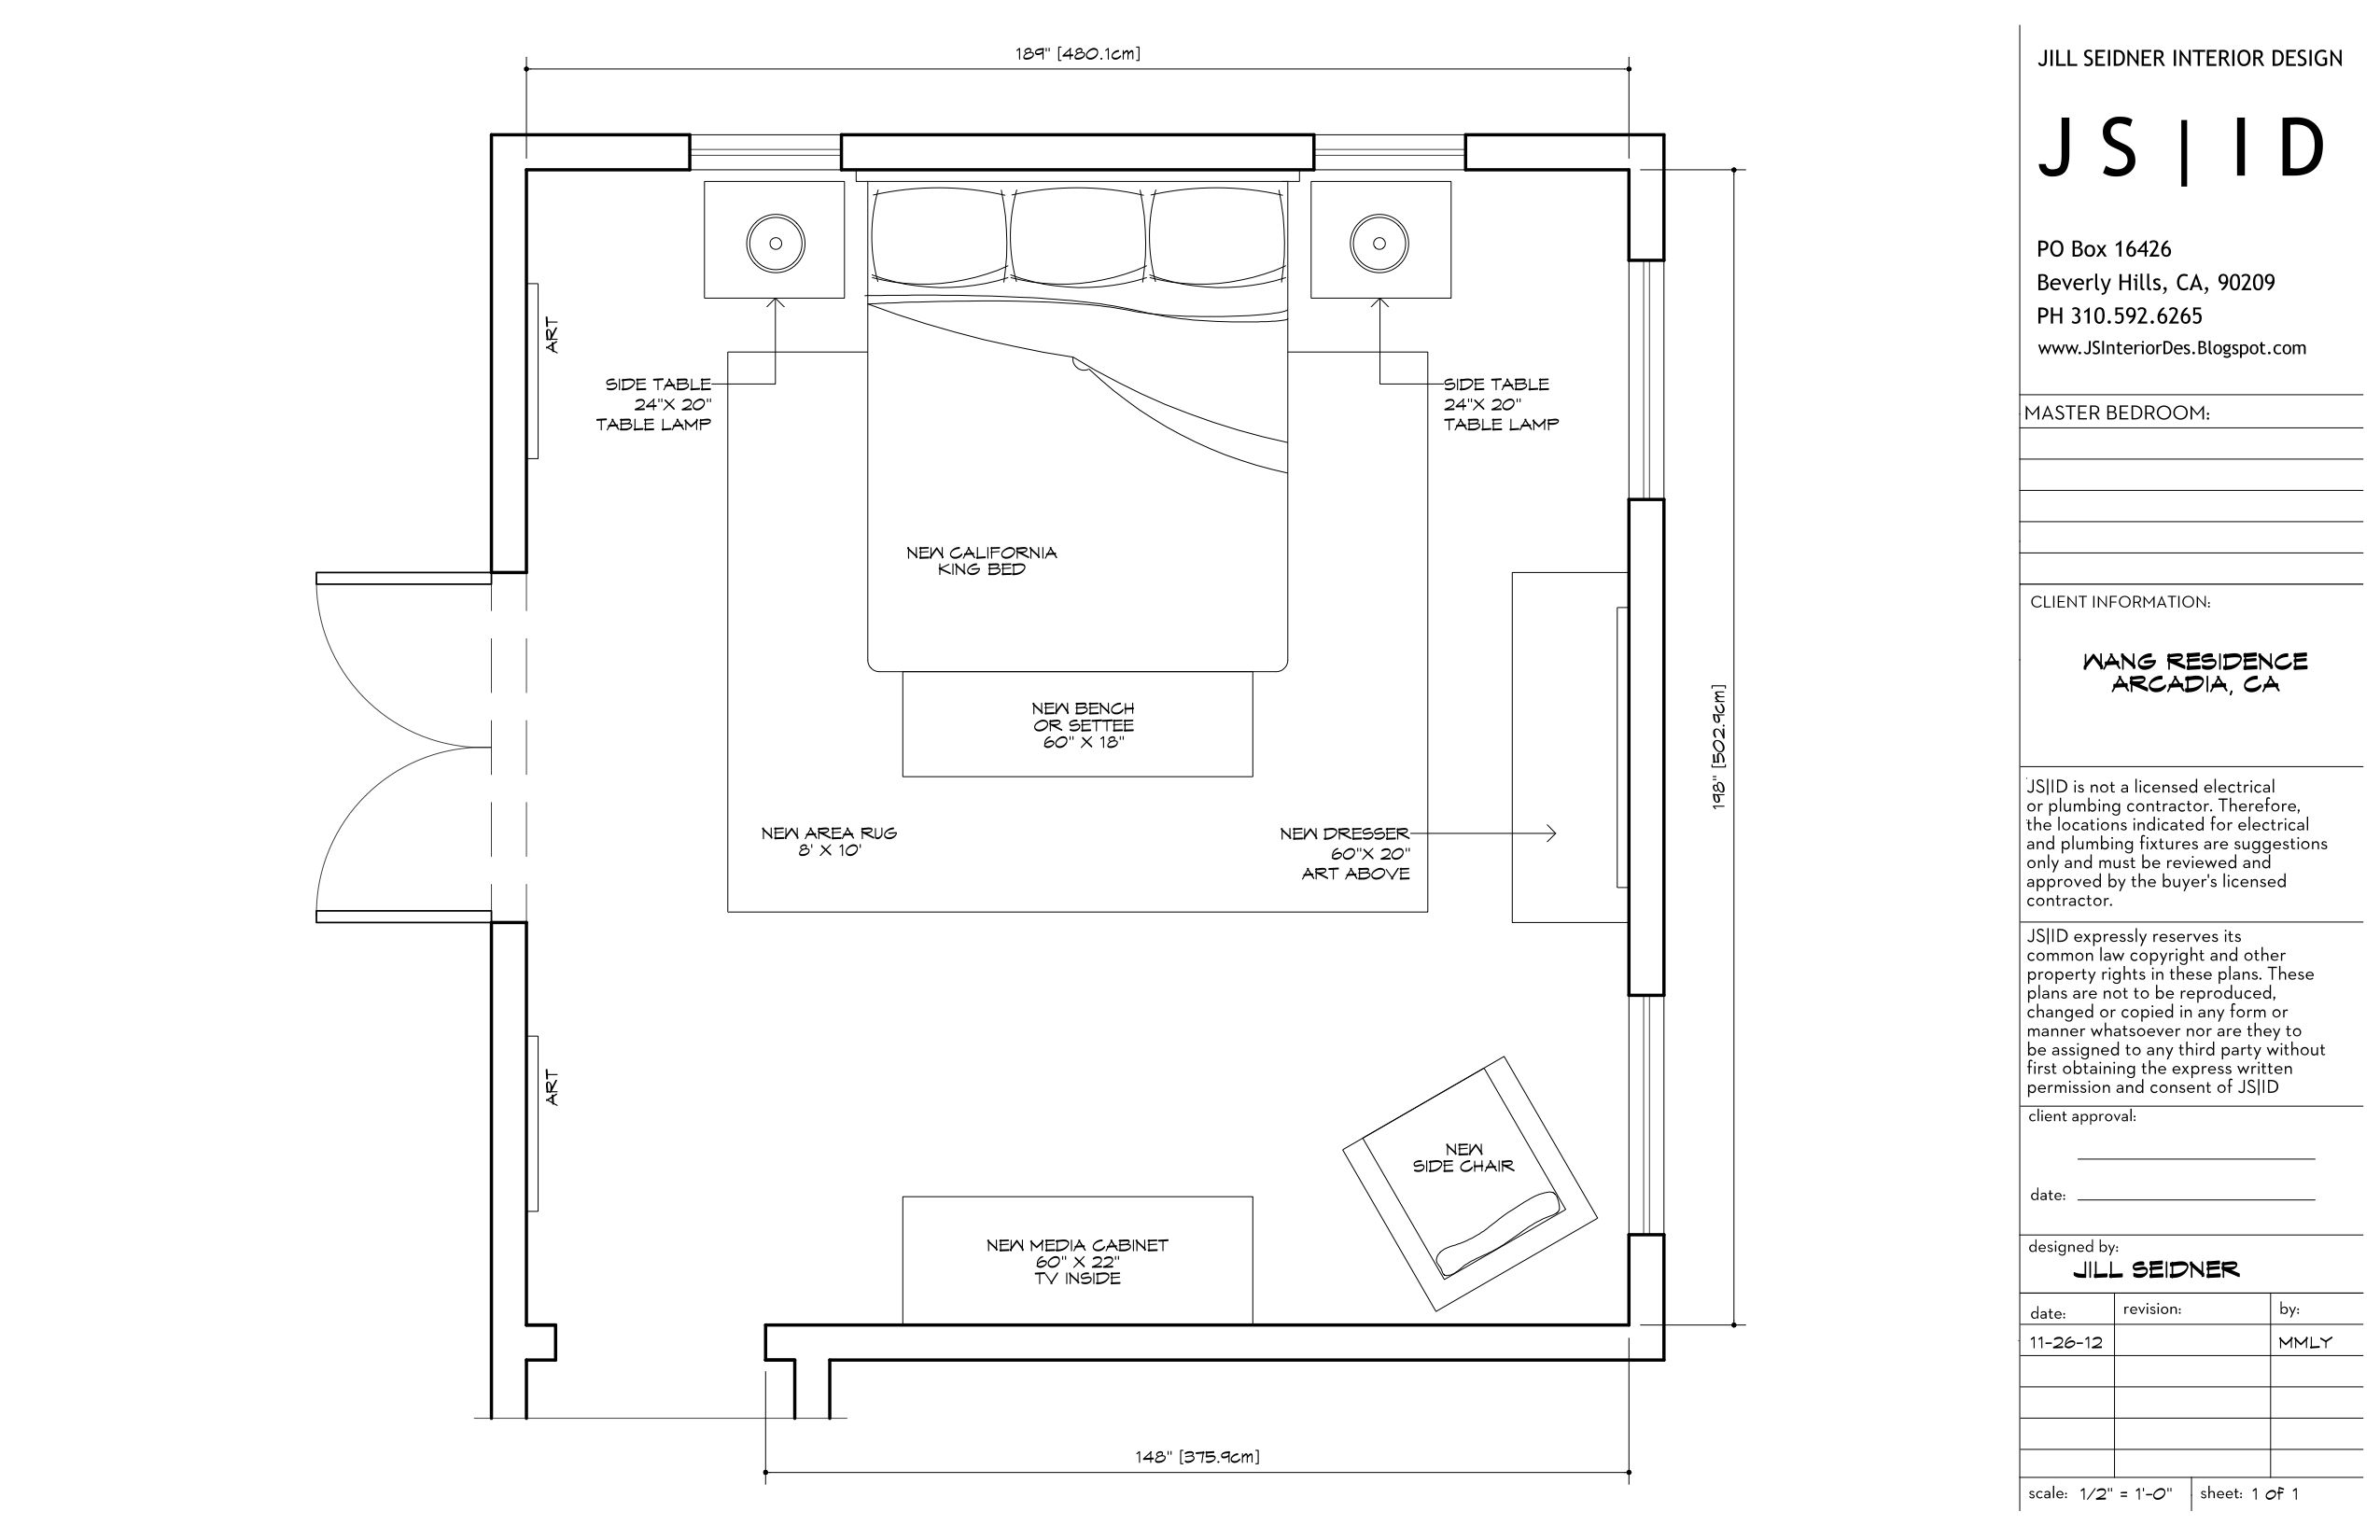 Arcadia, CA Online Design Project, Master Bedroom Furniture Floor Plan Layout, Option 2, CAD By